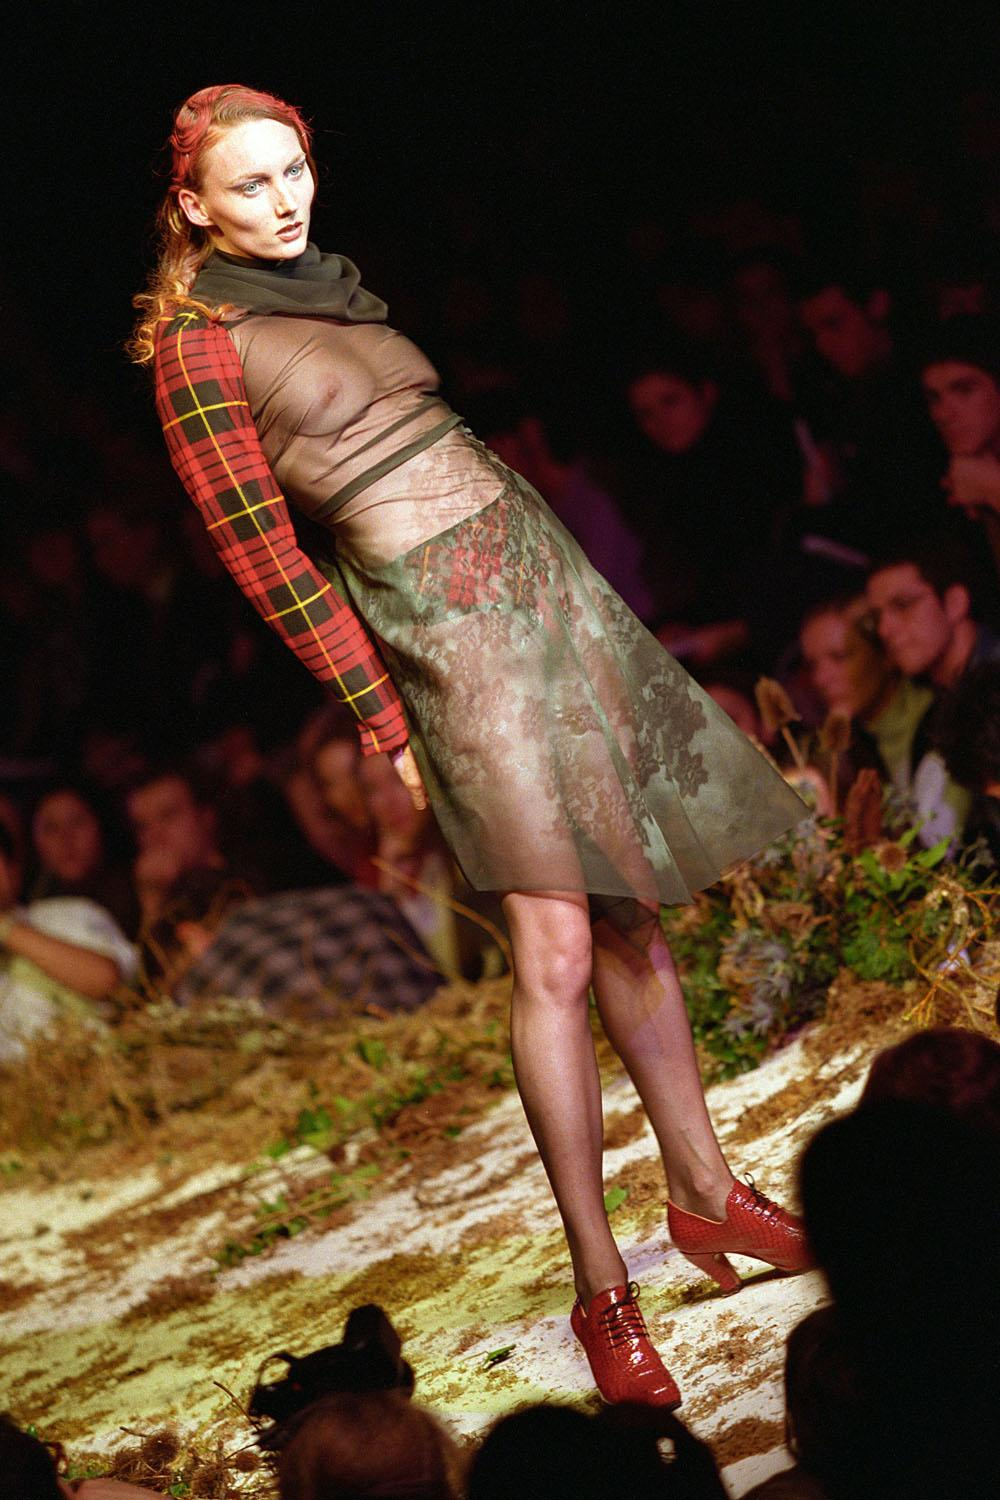 Psst, there's an Alexander McQueen auction happening next month http://t.co/WRmmp3oVuh http://t.co/szZl1gJDWq